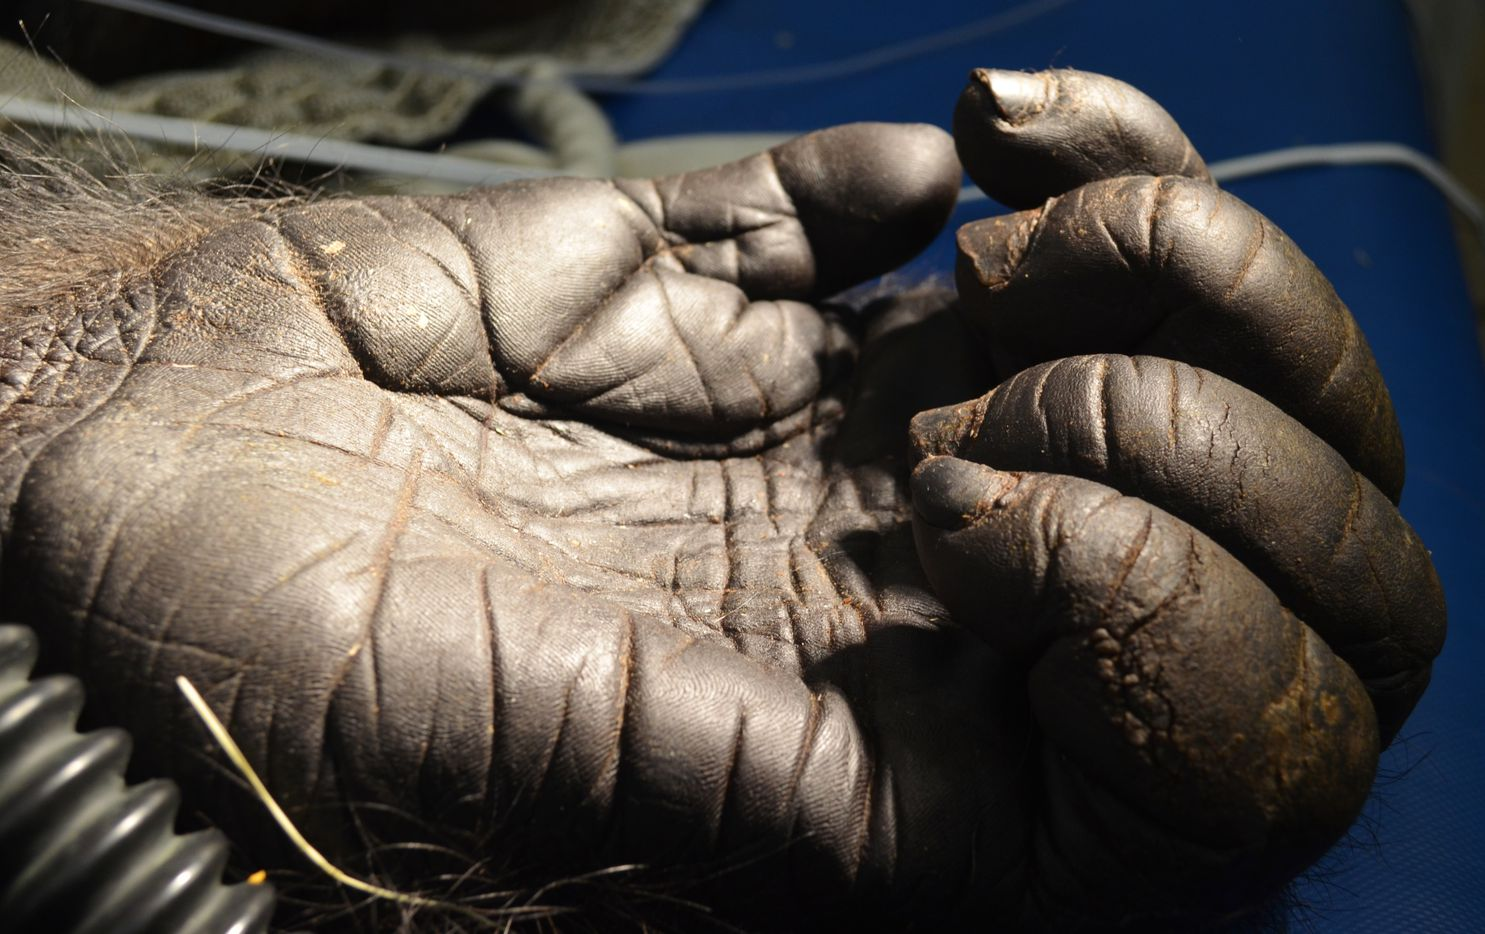 A close-up of Subira's hand. The gorilla was treated at the A.H. Meadows Animal Care Facility beginning in March 2015.